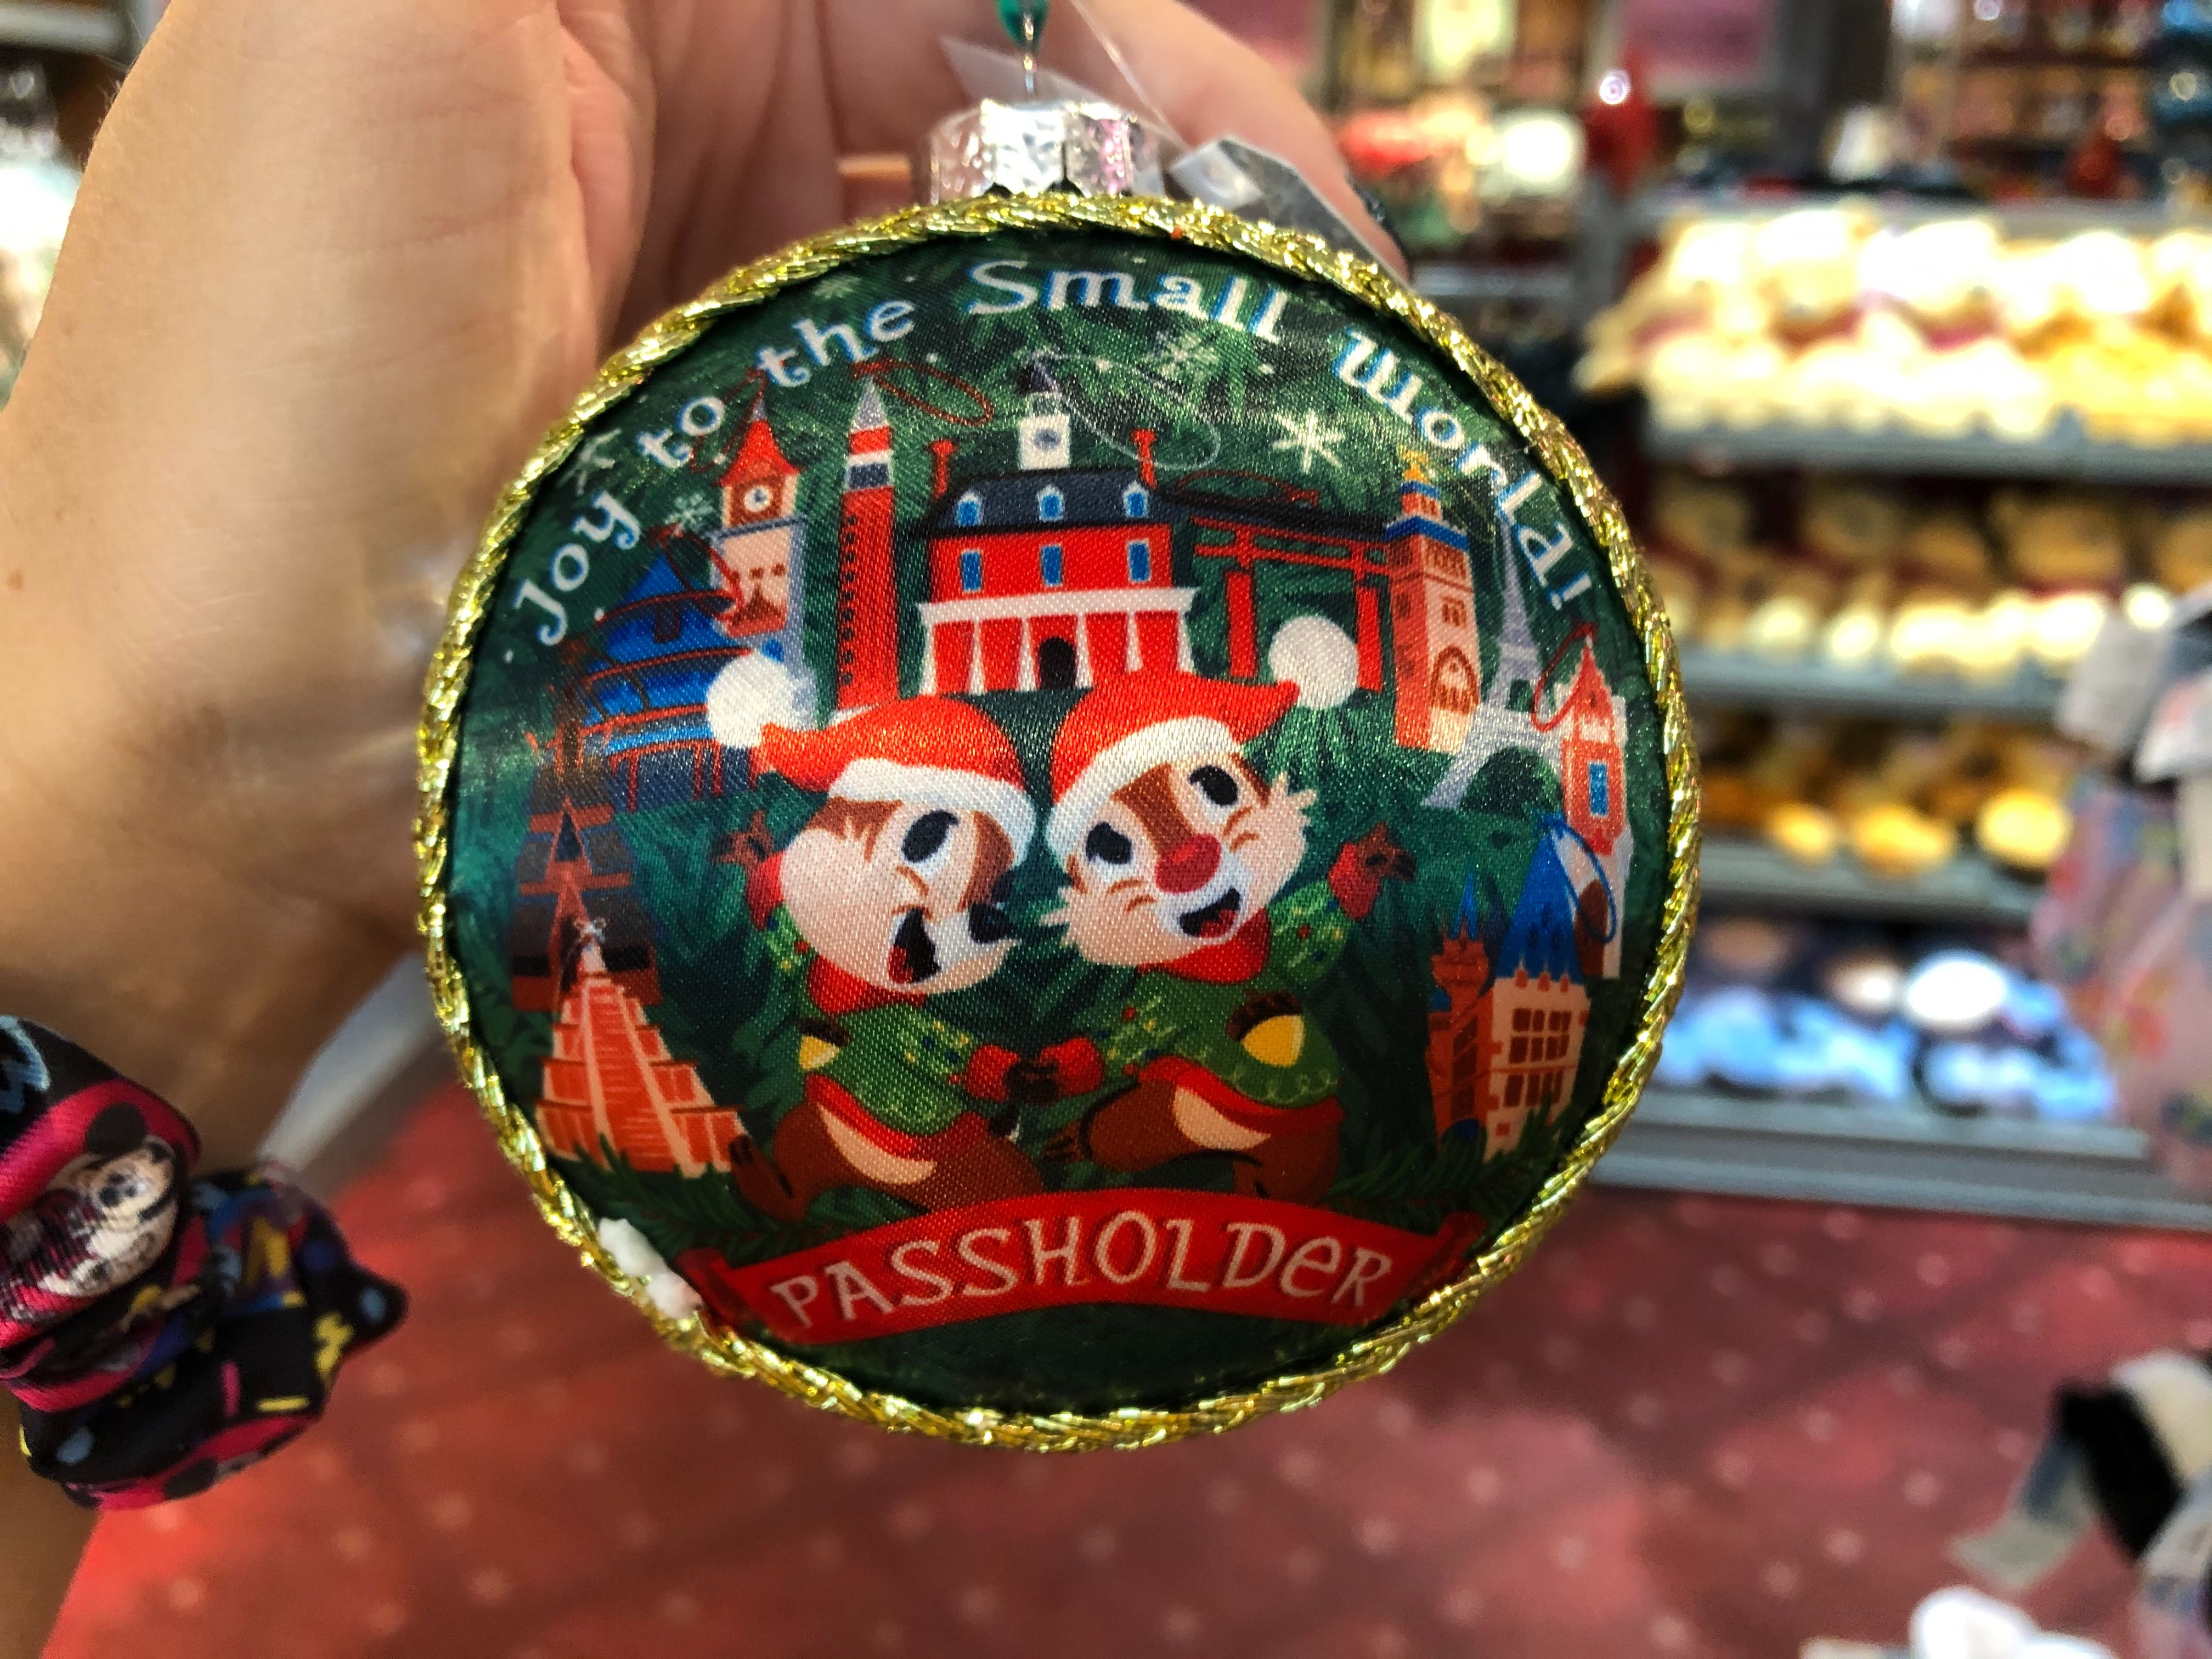 Annual Passholder Festival of the Holidays Ornament - $24.99